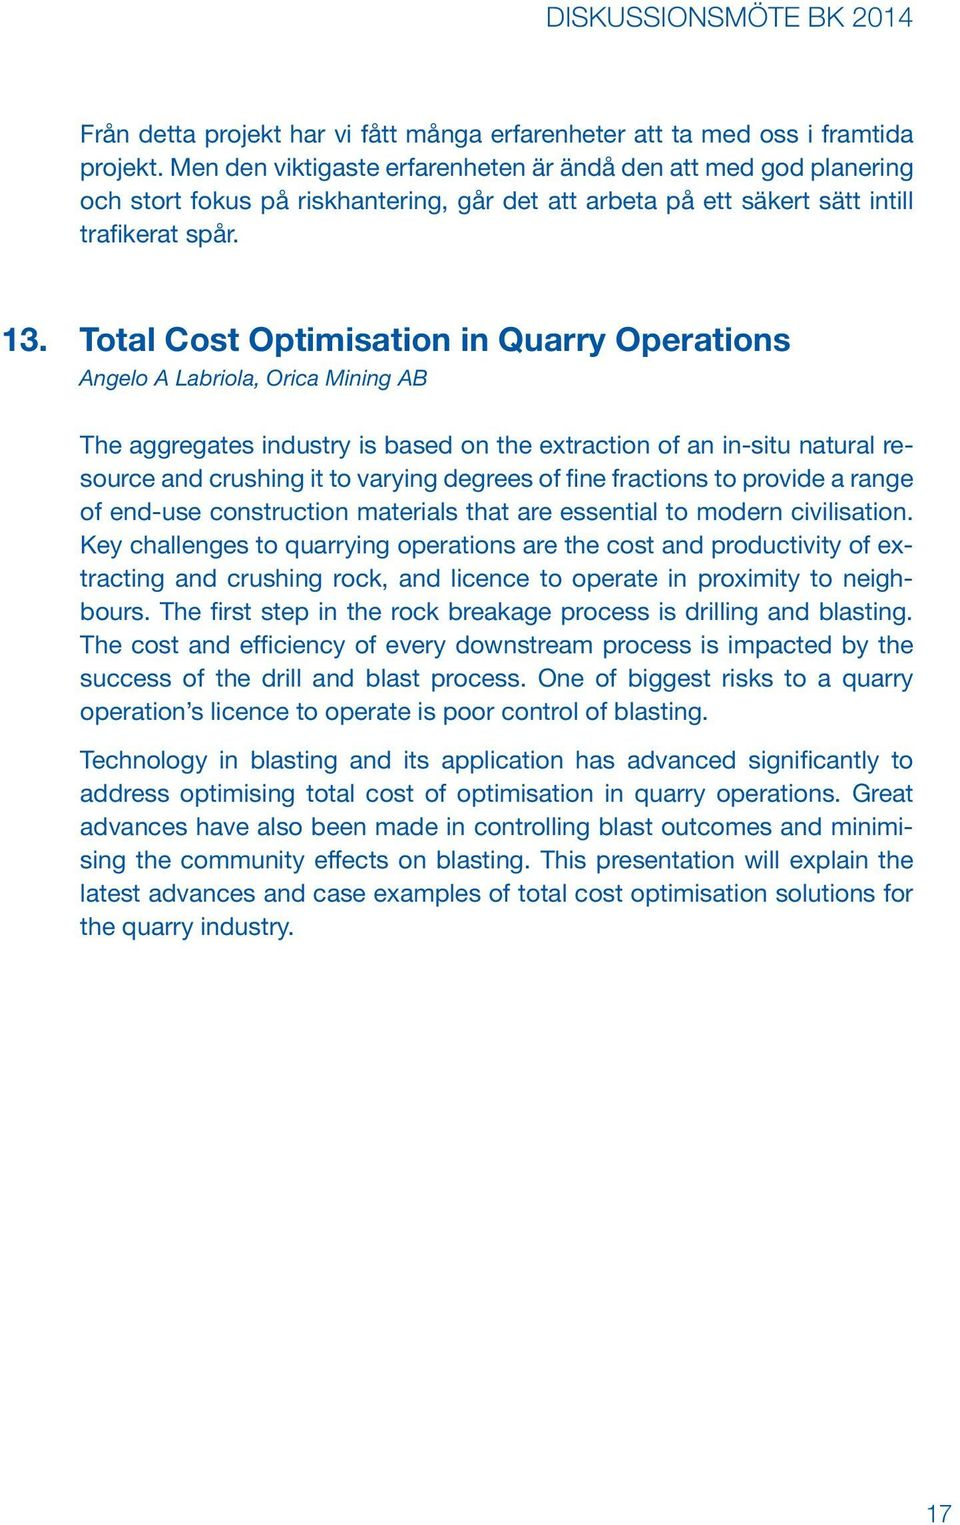 Total Cost Optimisation in Quarry Operations Angelo A Labriola, Orica Mining AB The aggregates industry is based on the extraction of an in-situ natural resource and crushing it to varying degrees of